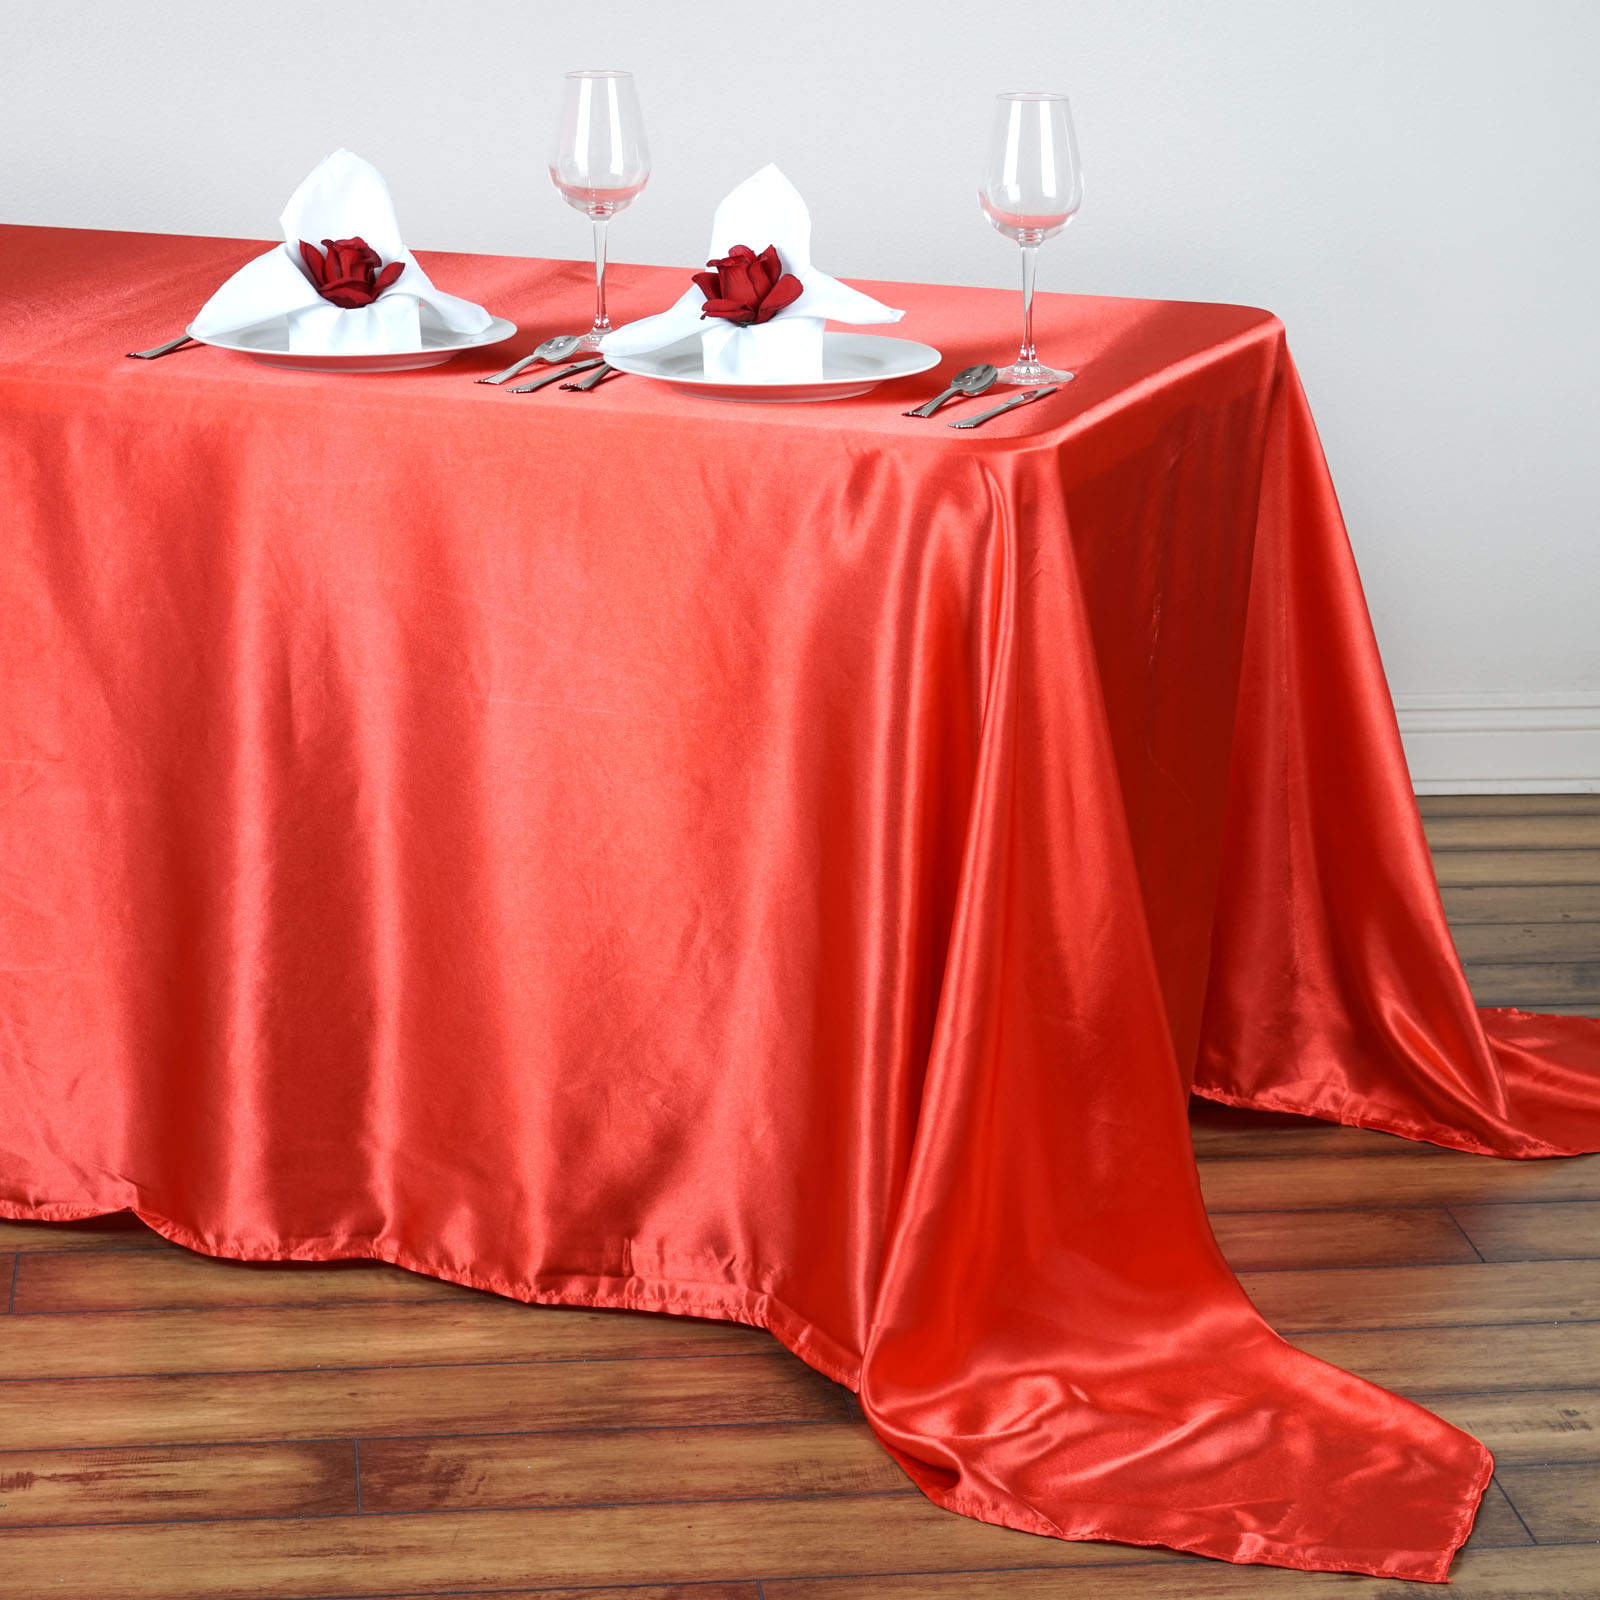 90x132-034-Rectangle-Satin-Tablecloth-For-Wedding-Party-Banquet-Events-Decoration thumbnail 26